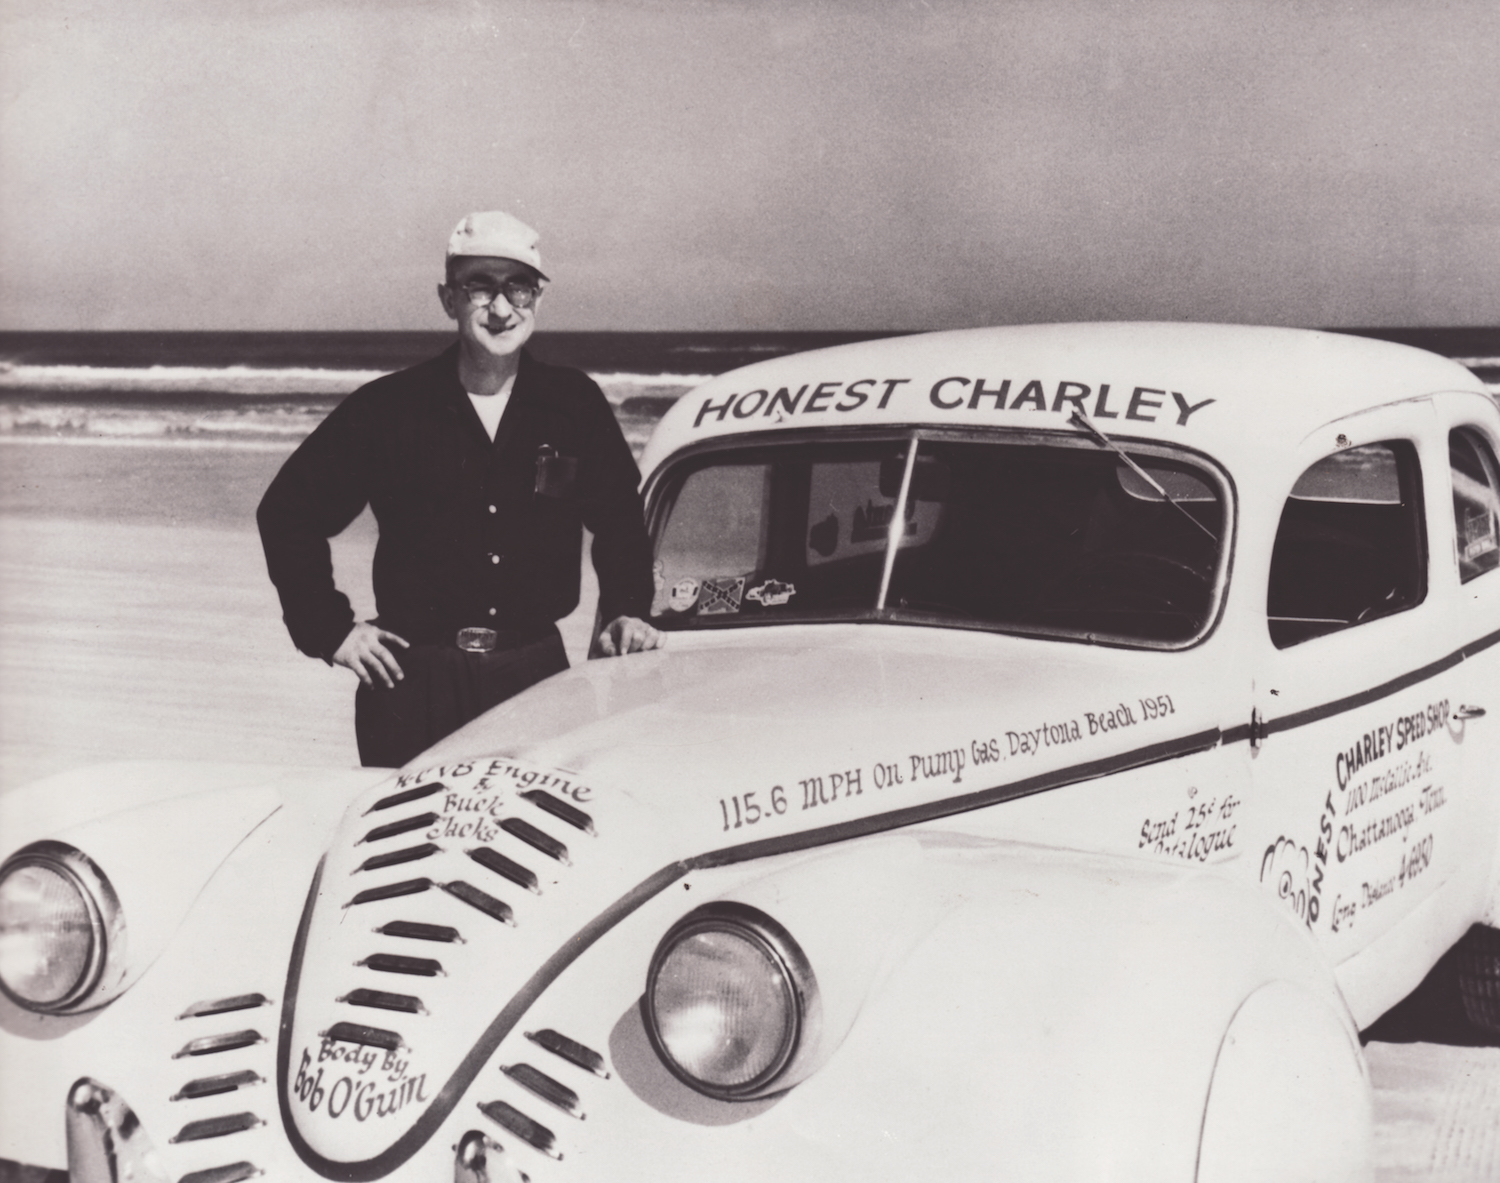 002-Honest Charley Daytona Car